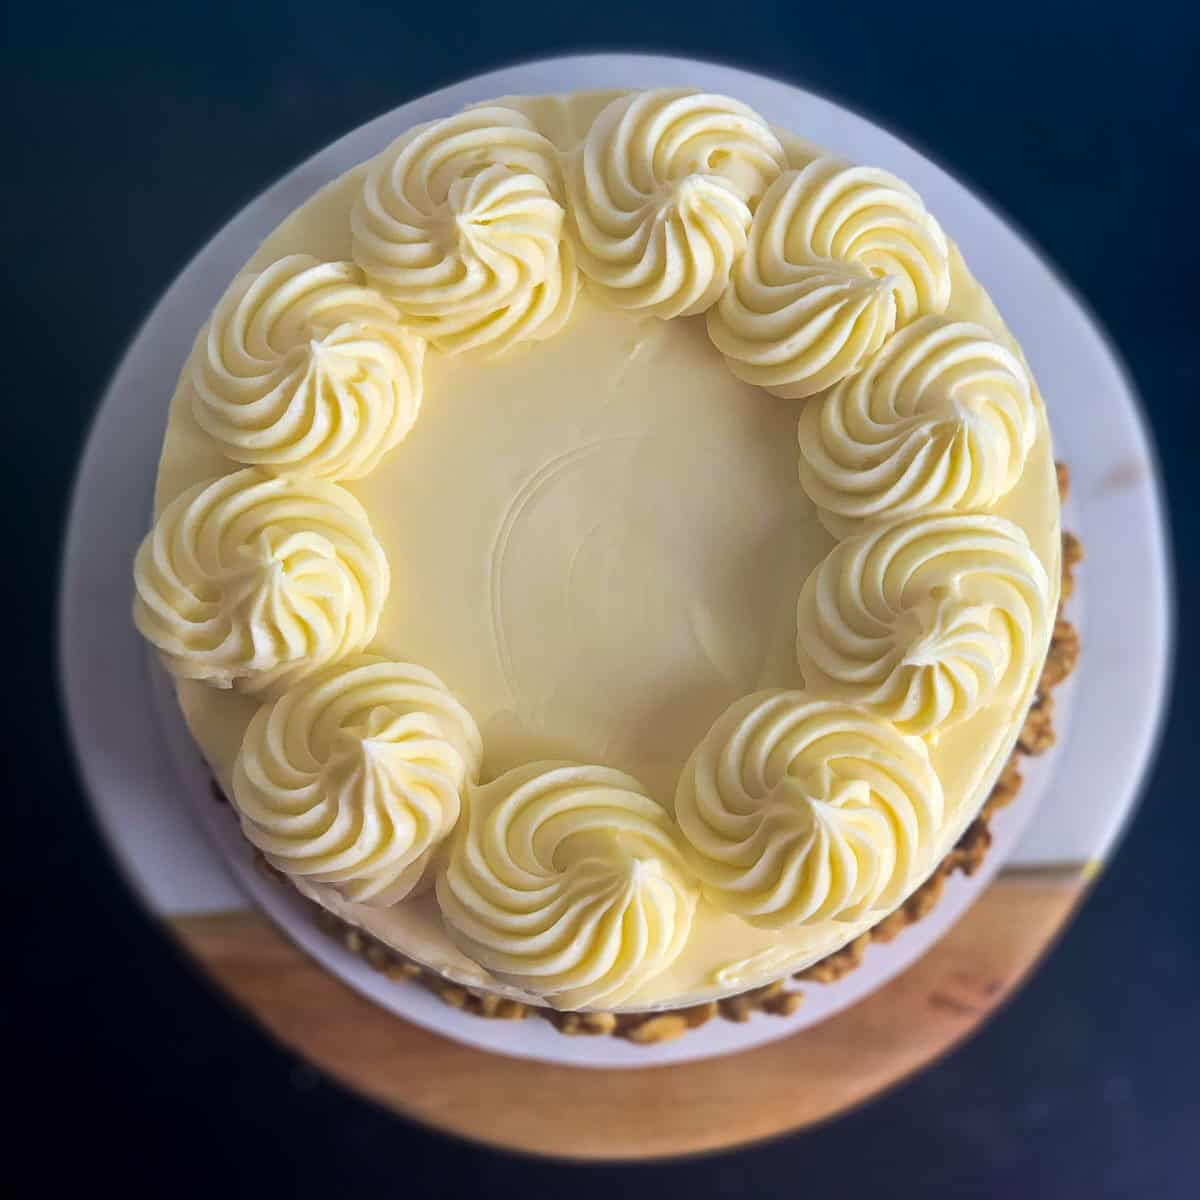 top view of carrot cake with cream cheese frosting and rosette border on black table